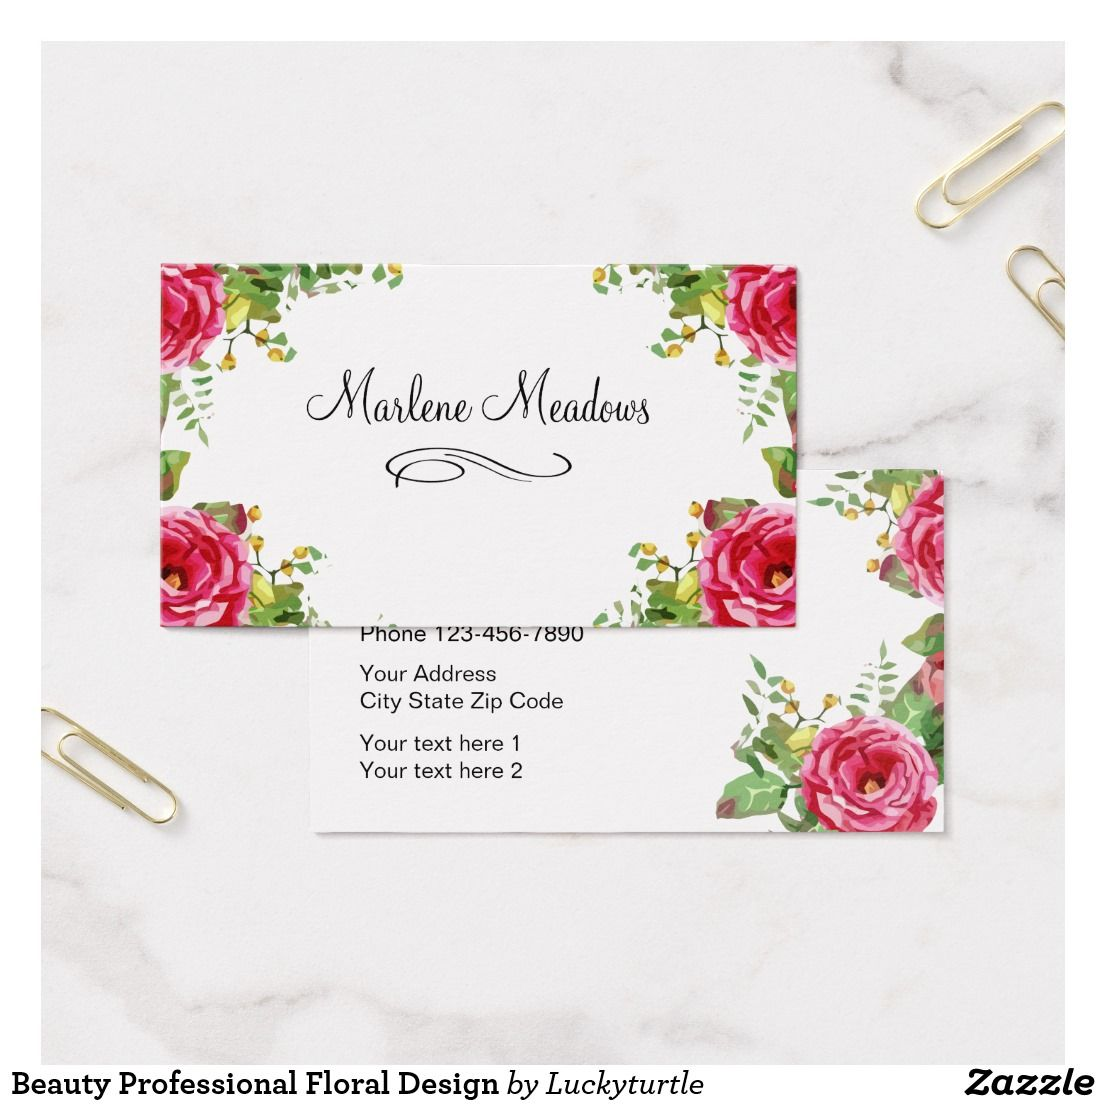 Beauty Professional Floral Design Business Card | Business ...